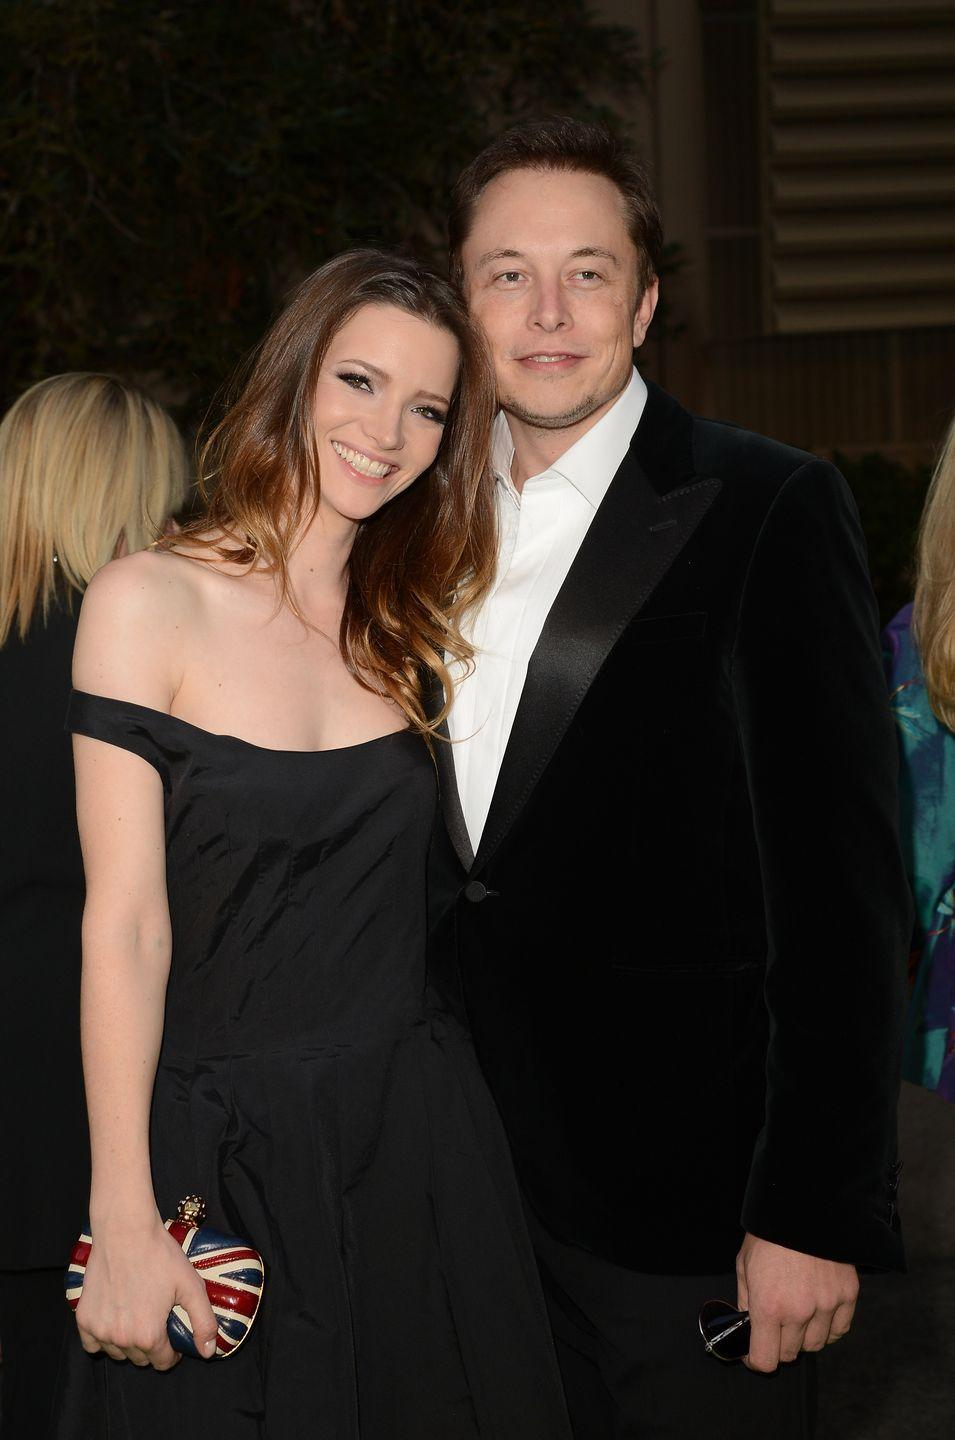 """<p>Elon Musk and actress Talulah Riley got married in 2010, but split after two years, which the <a href=""""https://www.forbes.com/sites/hannahelliott/2012/01/18/elon-musk-to-divorce-wife-talulah-riley/?sh=375a0a8f71b2"""" rel=""""nofollow noopener"""" target=""""_blank"""" data-ylk=""""slk:Tesla CEO announced via Twitter"""" class=""""link rapid-noclick-resp"""">Tesla CEO announced via Twitter</a>, saying, """"@rileytalulah It was an amazing four years. I will love you forever. You will make someone very happy one day."""" Just one year later, <a href=""""https://www.businessinsider.com/elon-musk-relationships-2017-11"""" rel=""""nofollow noopener"""" target=""""_blank"""" data-ylk=""""slk:the divorced couple remarried"""" class=""""link rapid-noclick-resp"""">the divorced couple remarried</a>; however, they finalized their second divorce in 2016. </p>"""